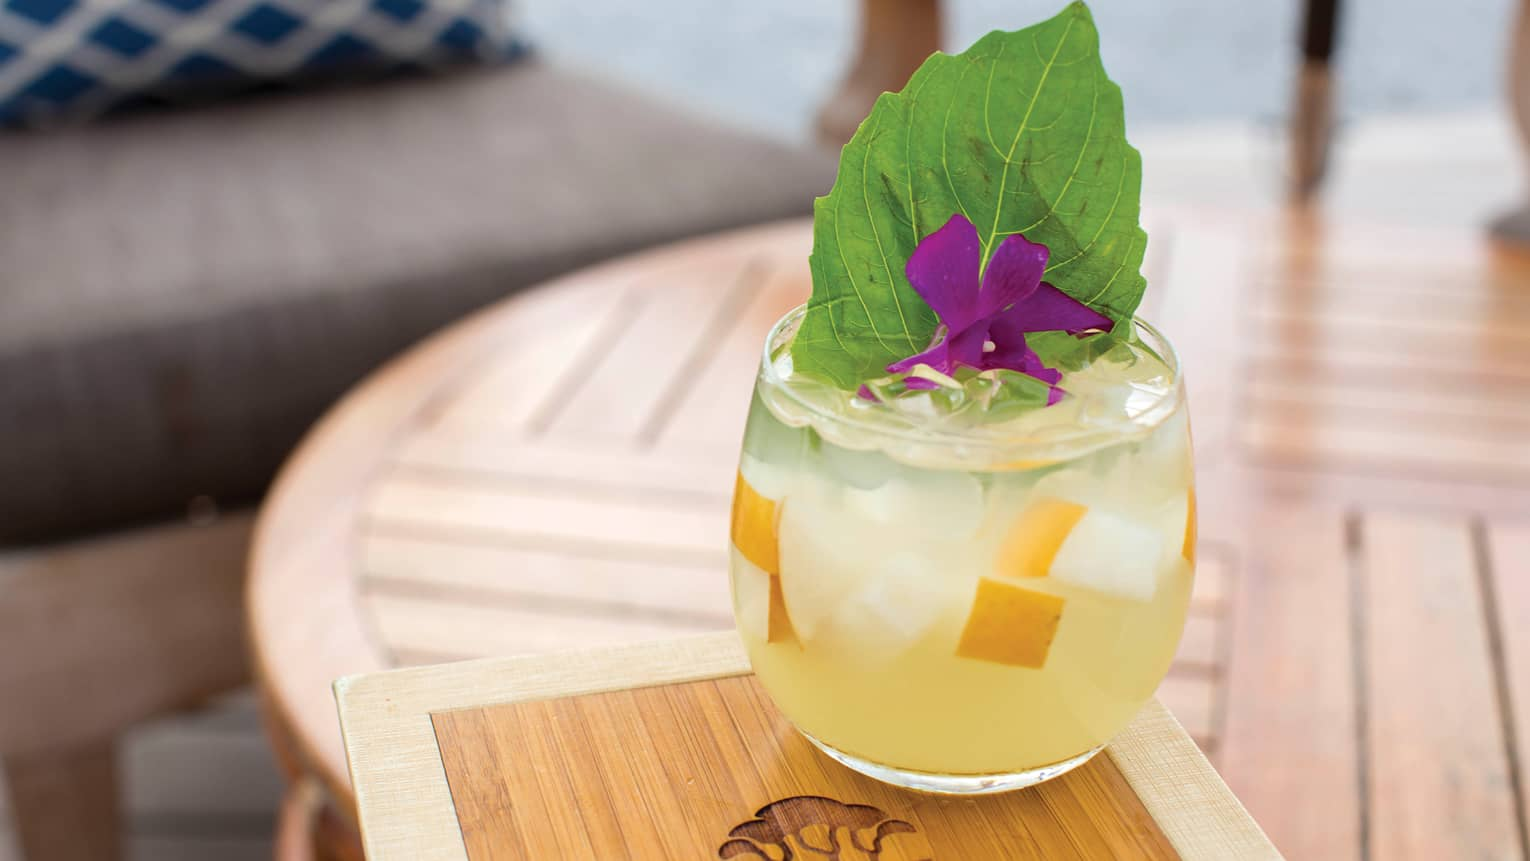 Waimea Burro yellow cocktail with cucumber, fruit pieces, large leaf, flower garnish